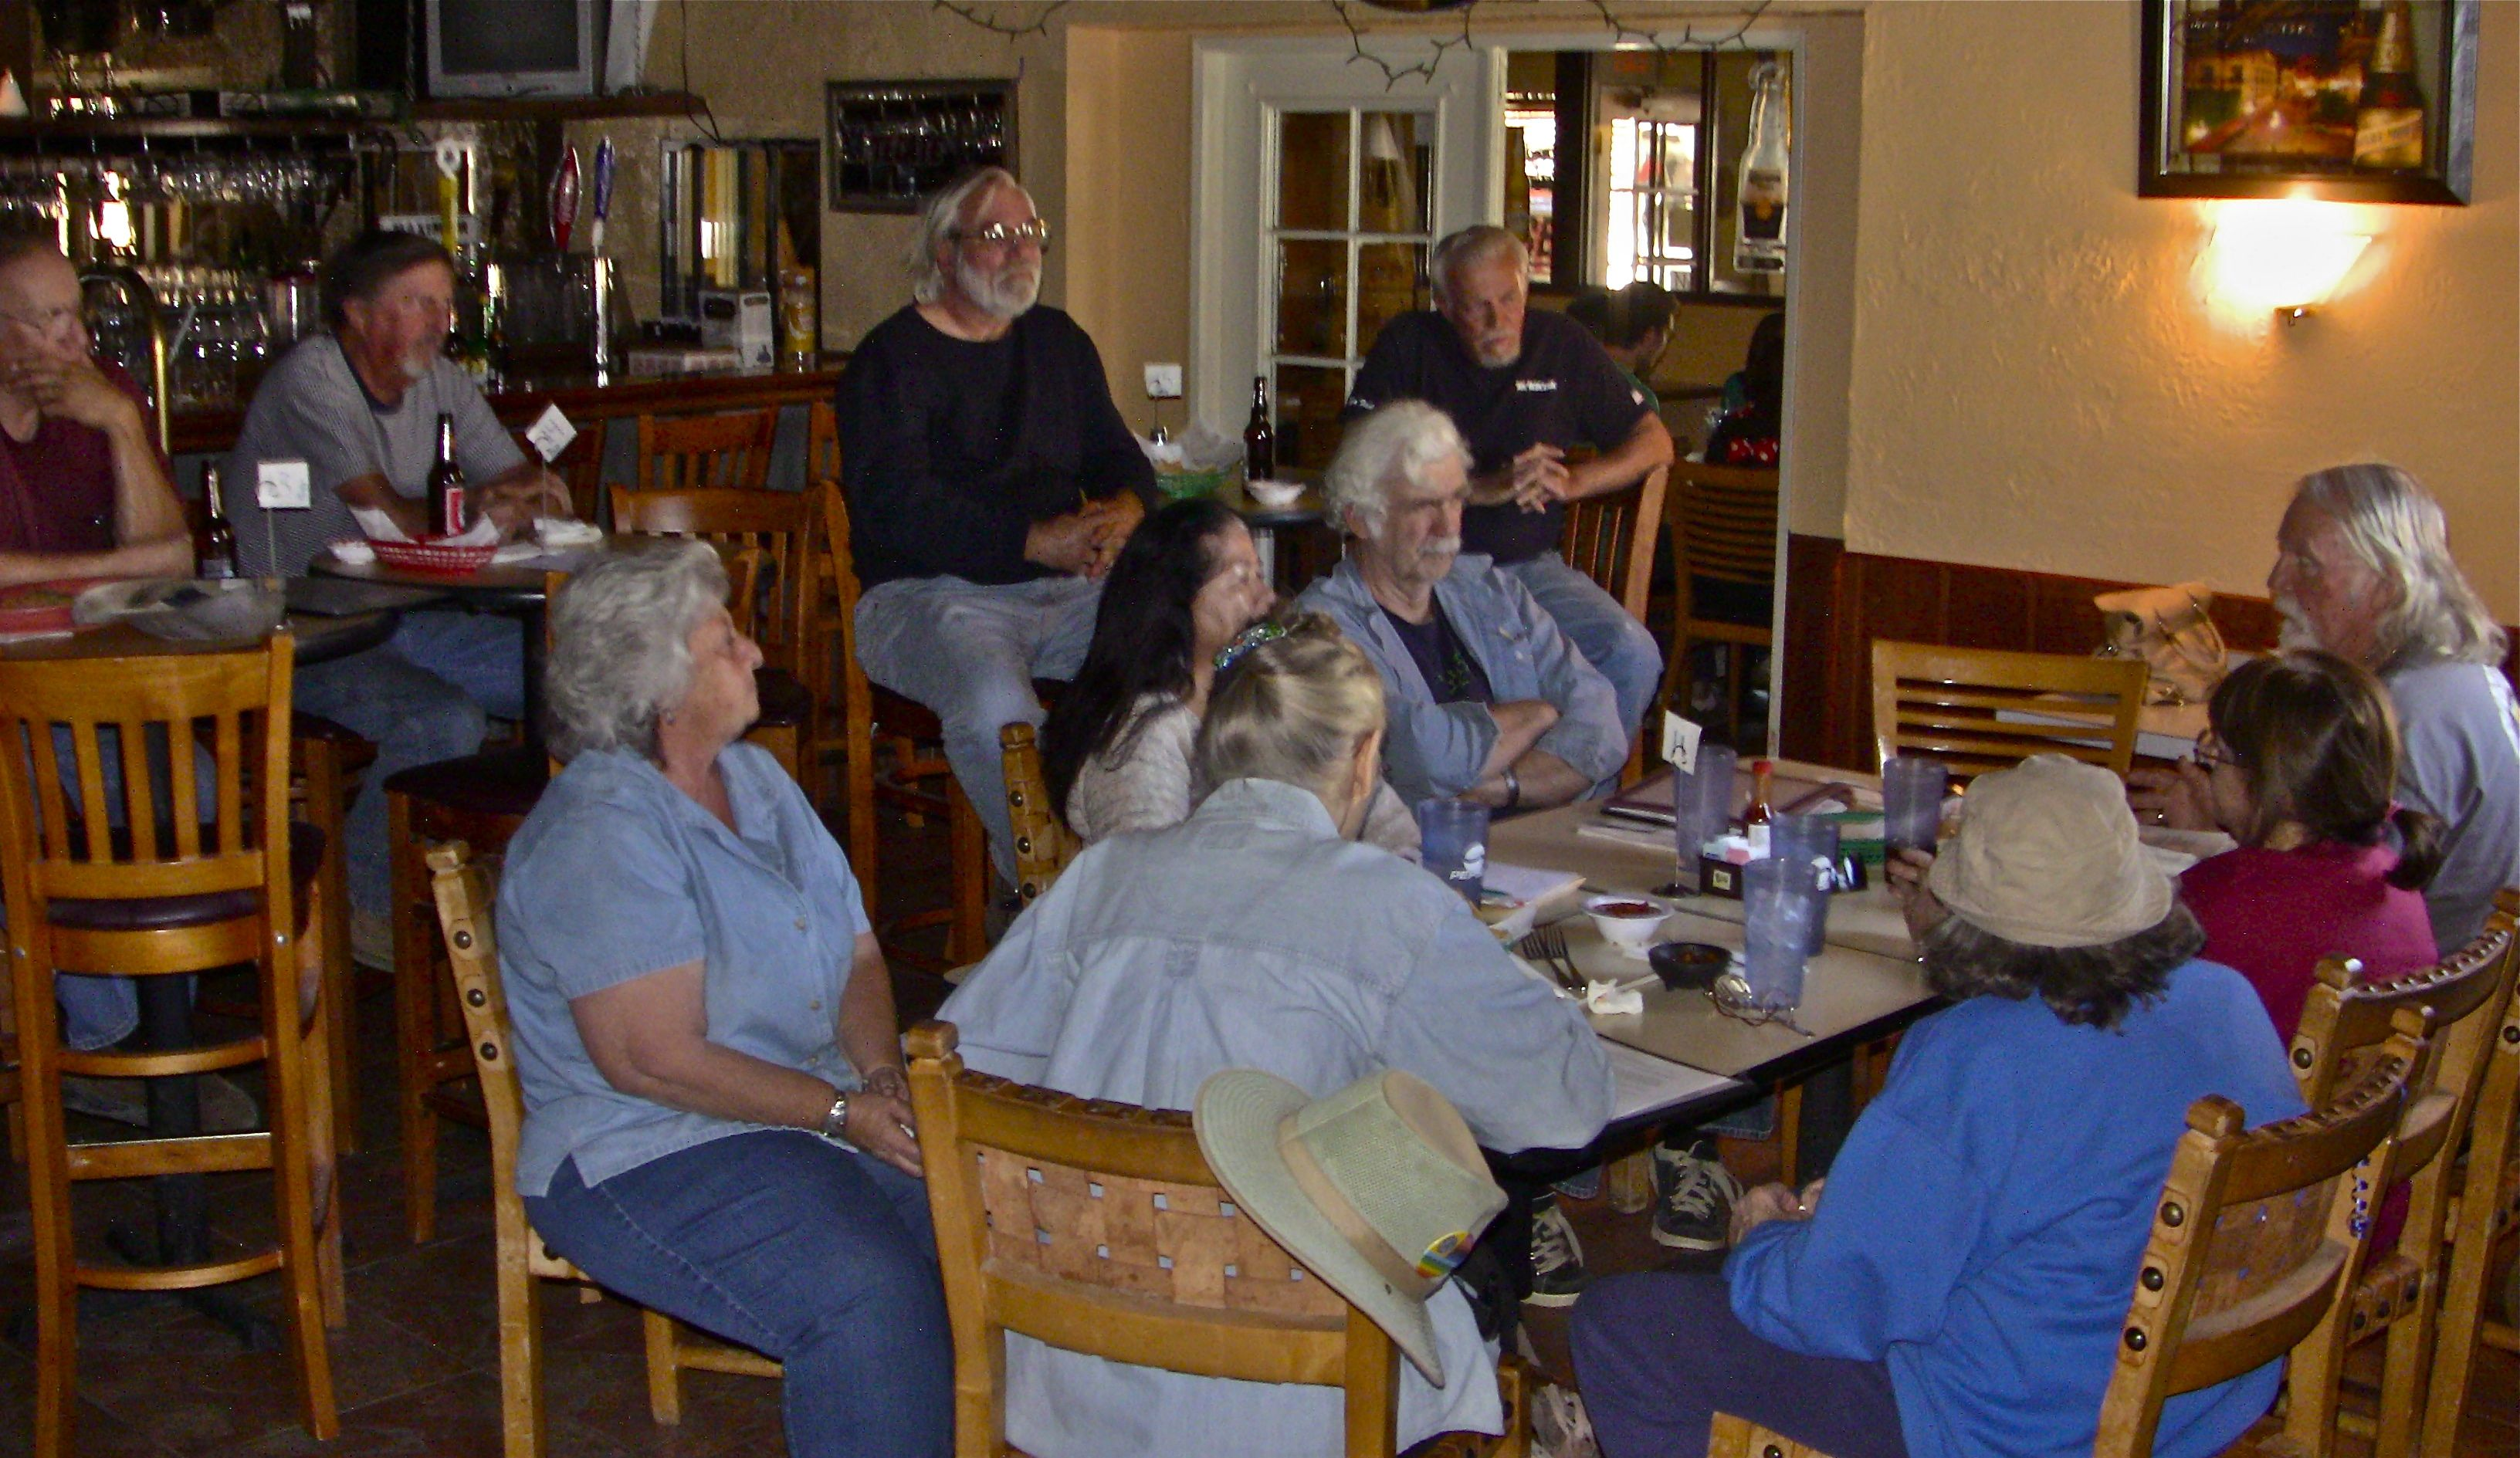 Some of the neighbors meeting with TriCounty Watchdogs to explore options for challenging negative declaration by Ventura County, which Watchdogs say would stop the ability to secure more complete information and community dialogue about the proposed facility to house 60 wolves and wolf dogs. LARC's 'Howling Press' newsletter ridicules the neighbors and their concerns as being hysterical and exaggerated.